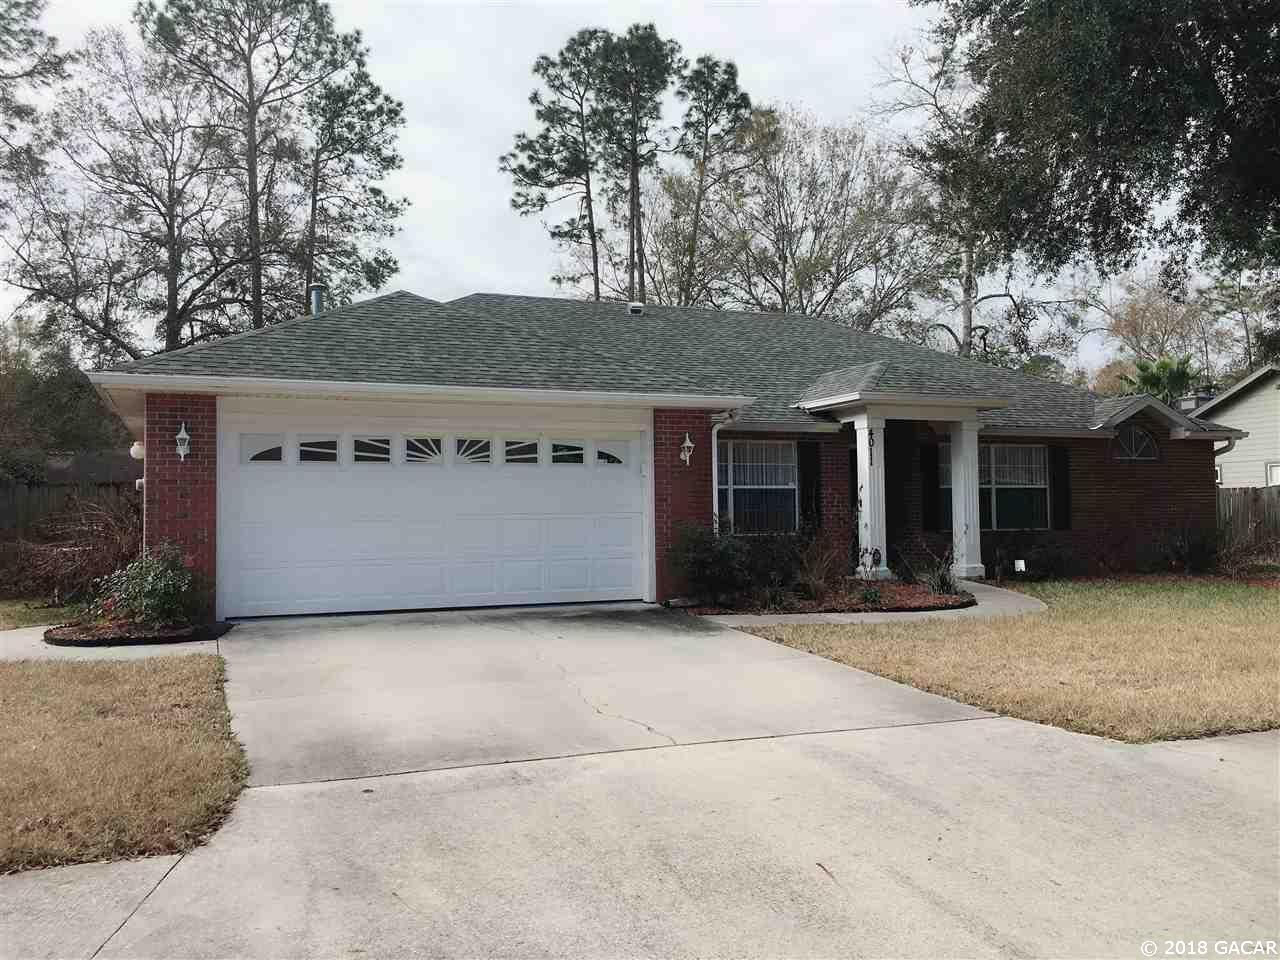 4011 nw 65th ave gainesville fl mls 411567 coldwell banker gainesville fl 32653 rubansaba